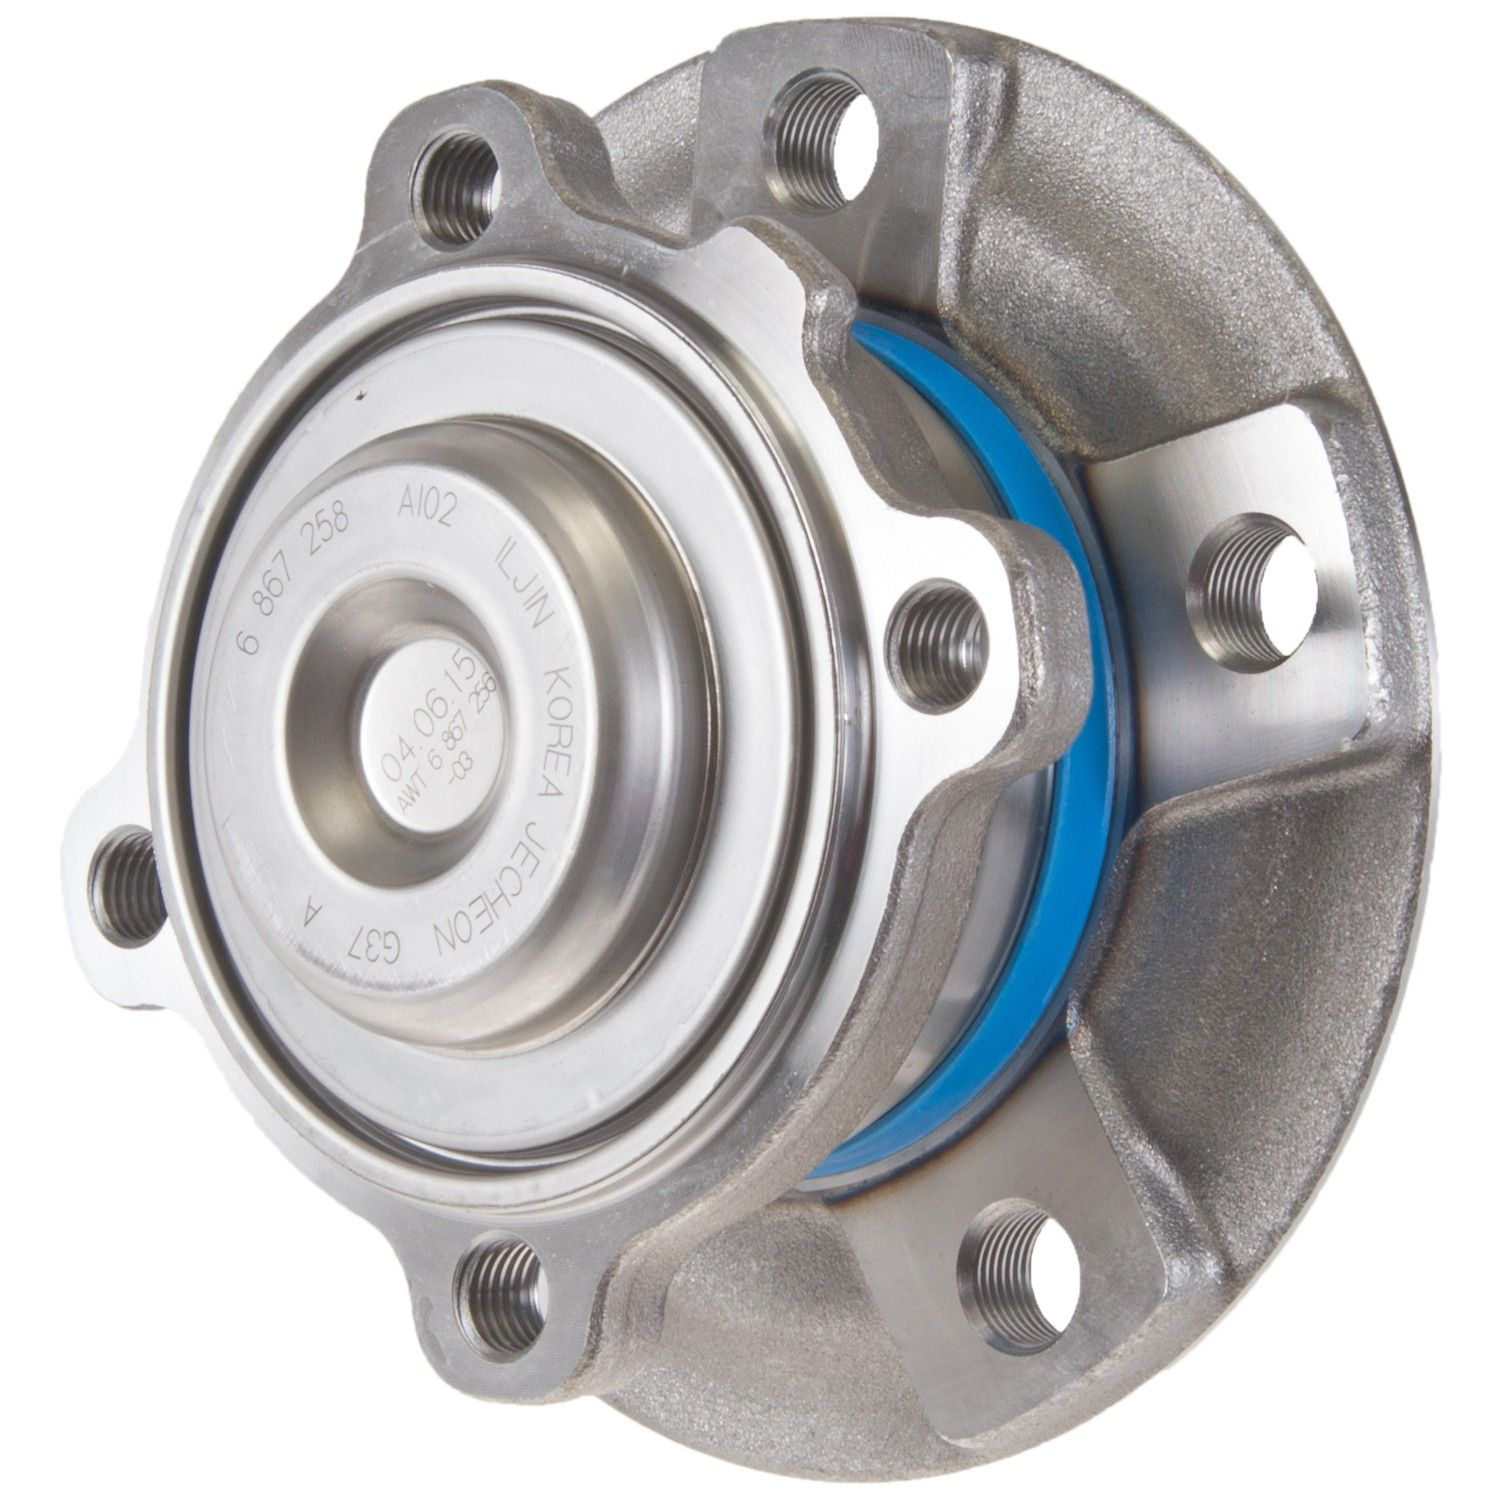 BMW 335i Wheel Bearing and Hub Assembly Replacement (Beck